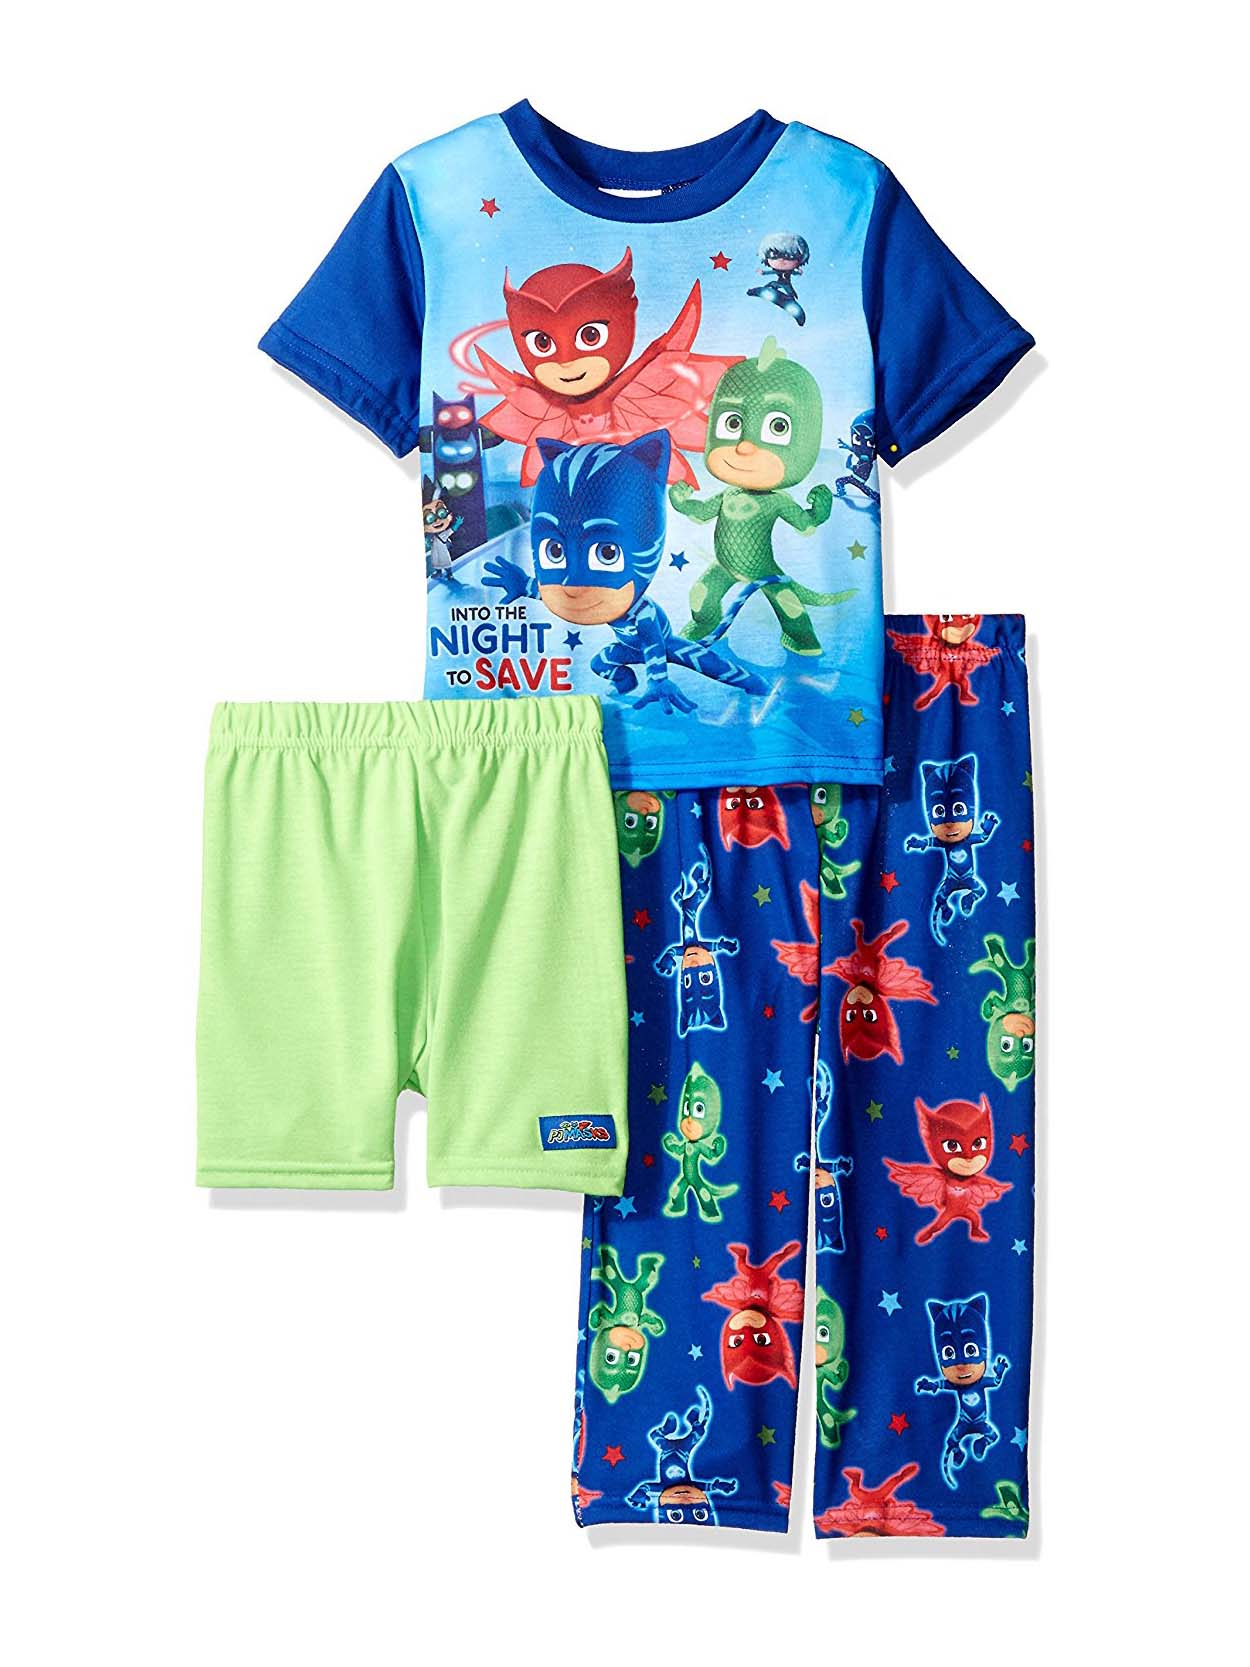 Disney PJ Masks Toddler Boys 3 piece Pajama Set 21PJ022EZS